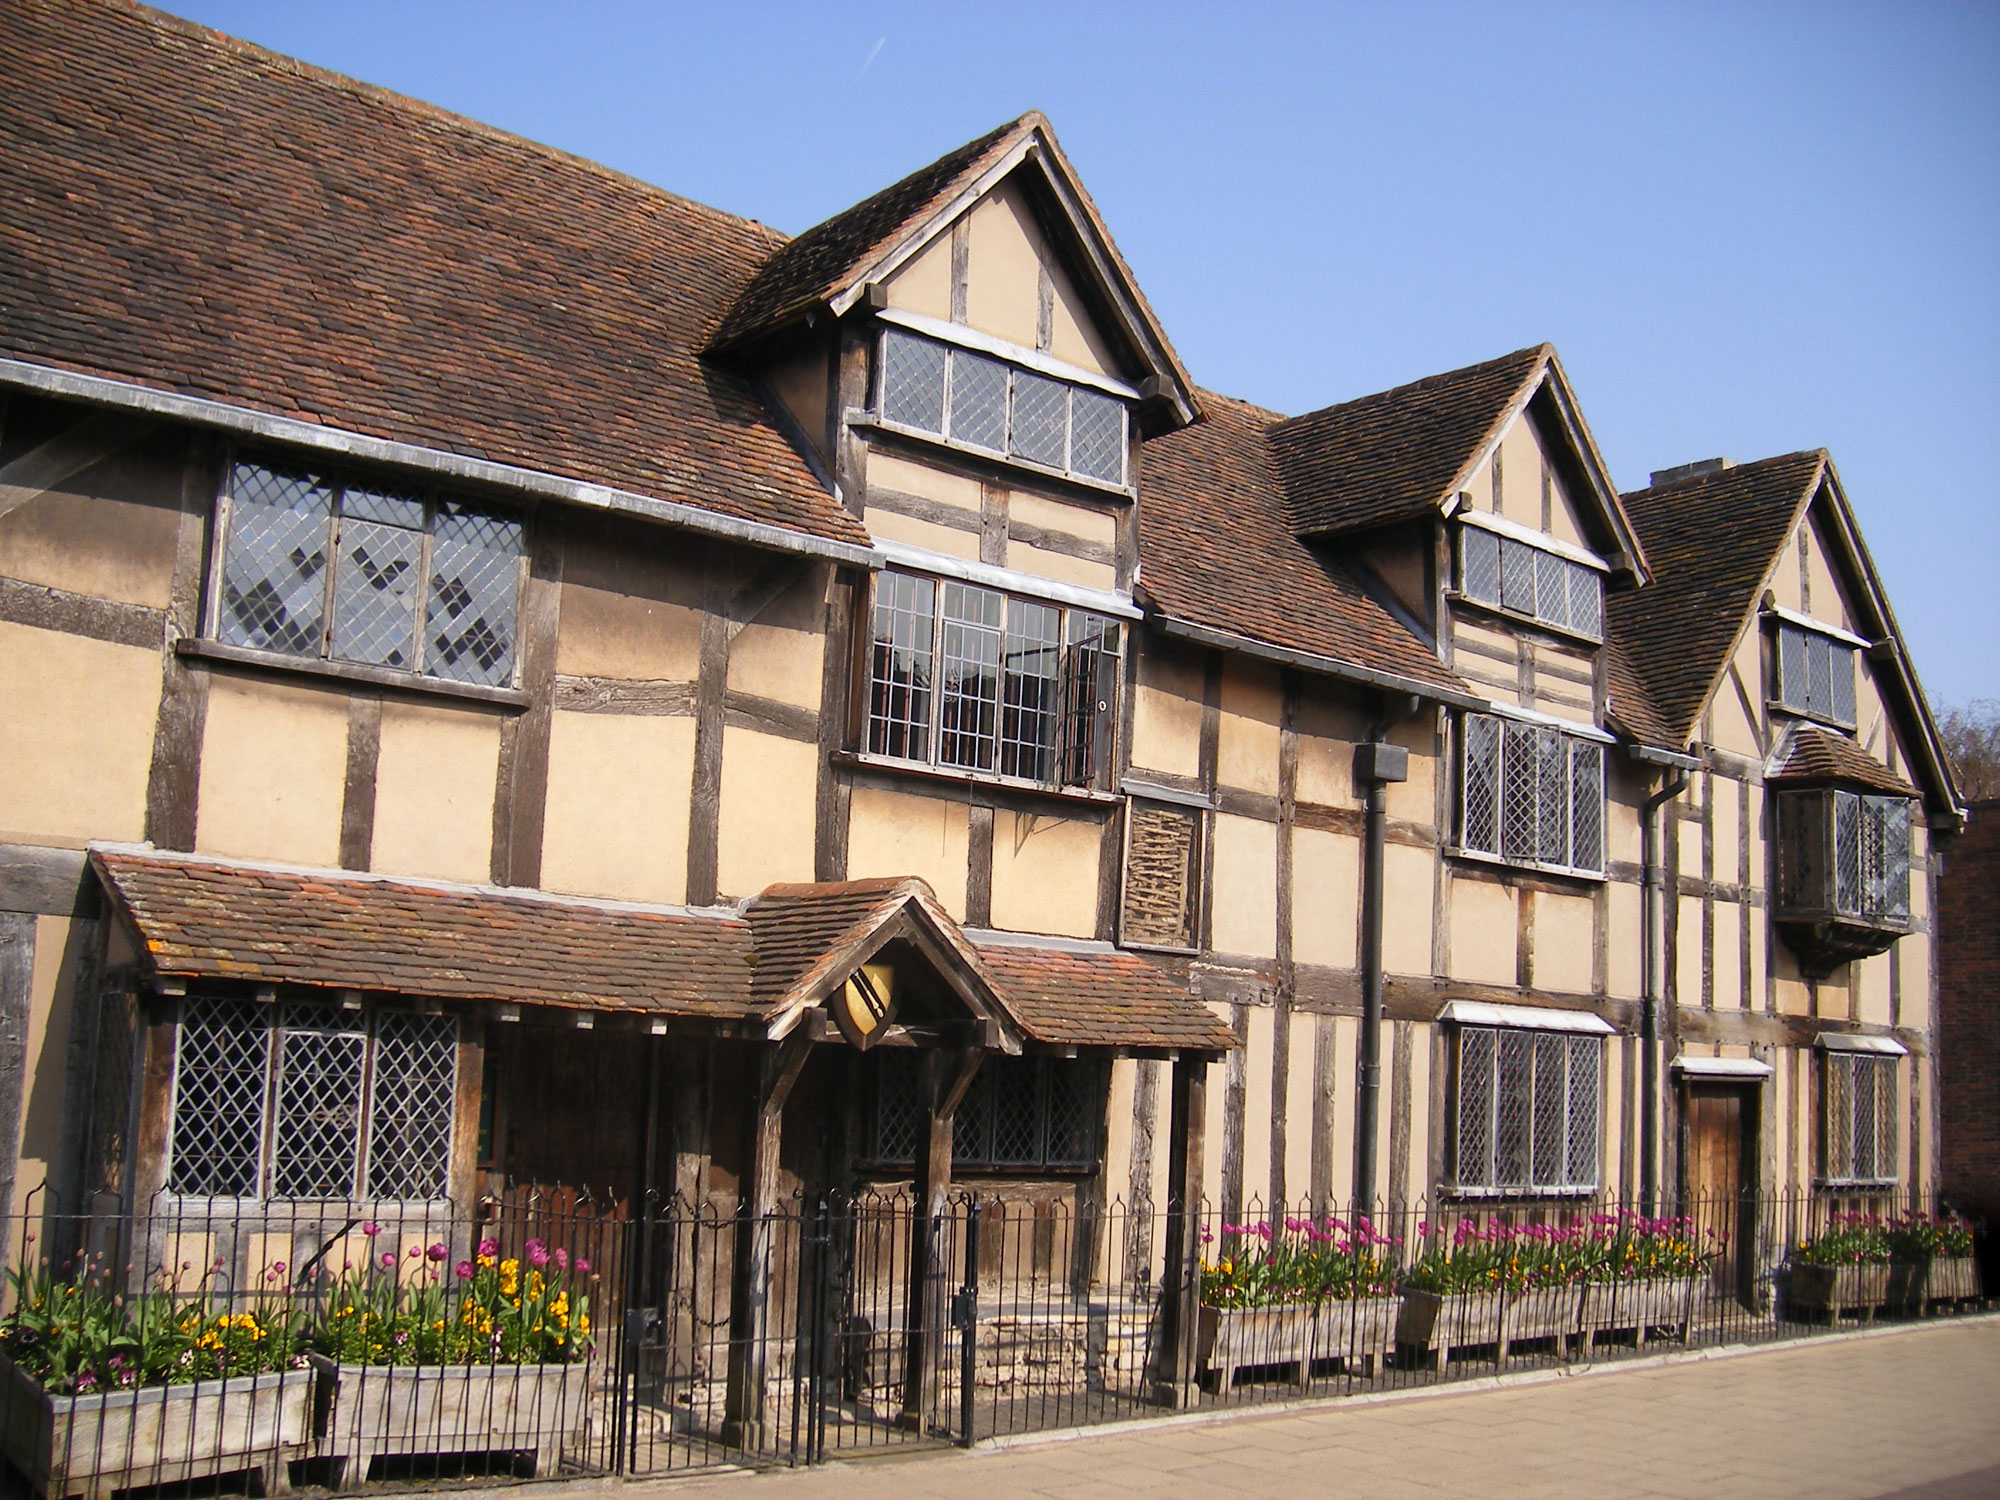 photograph of exterior of large tudor building